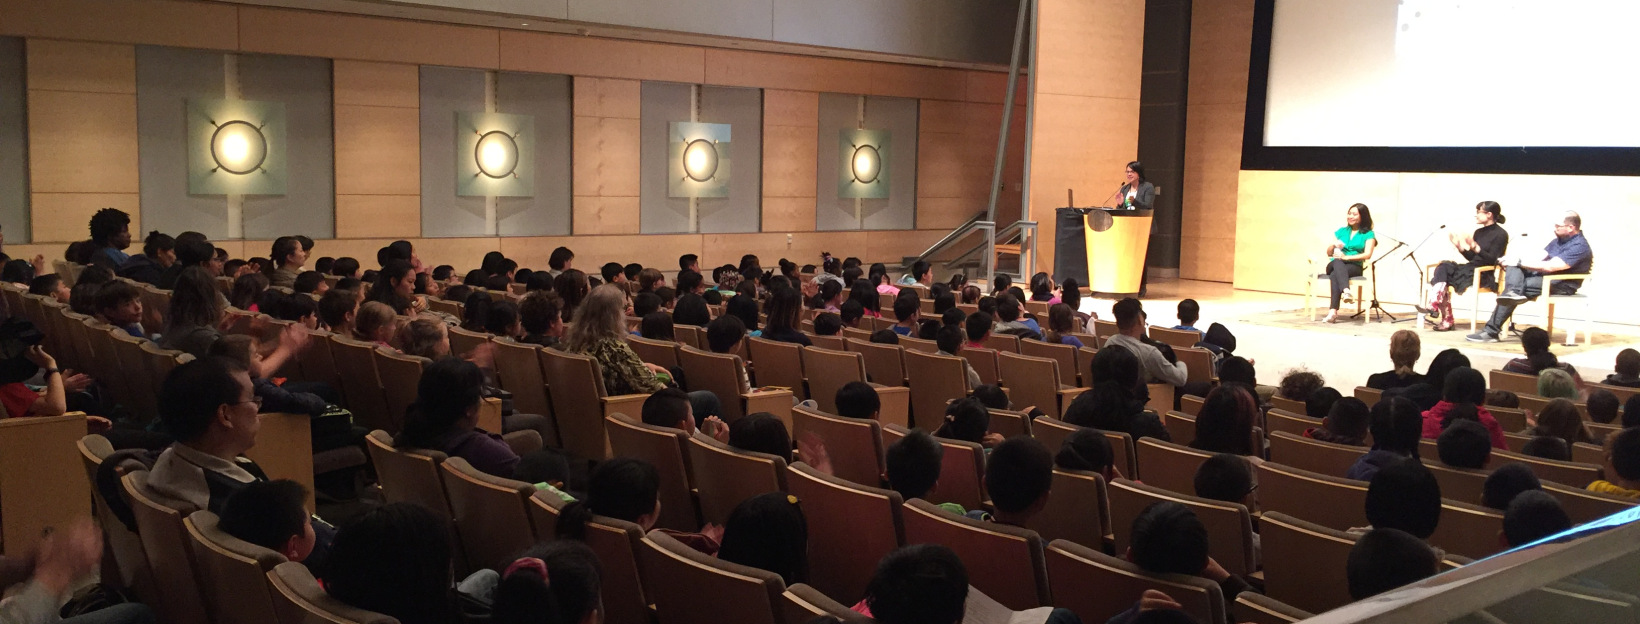 Mae (in the green!) presenting with author friends Jill Diamond and Alexis Fajardo to 500 amazing students at San Francisco's #Kidquake!  Photo credit: Jilanne Hoffman Blog